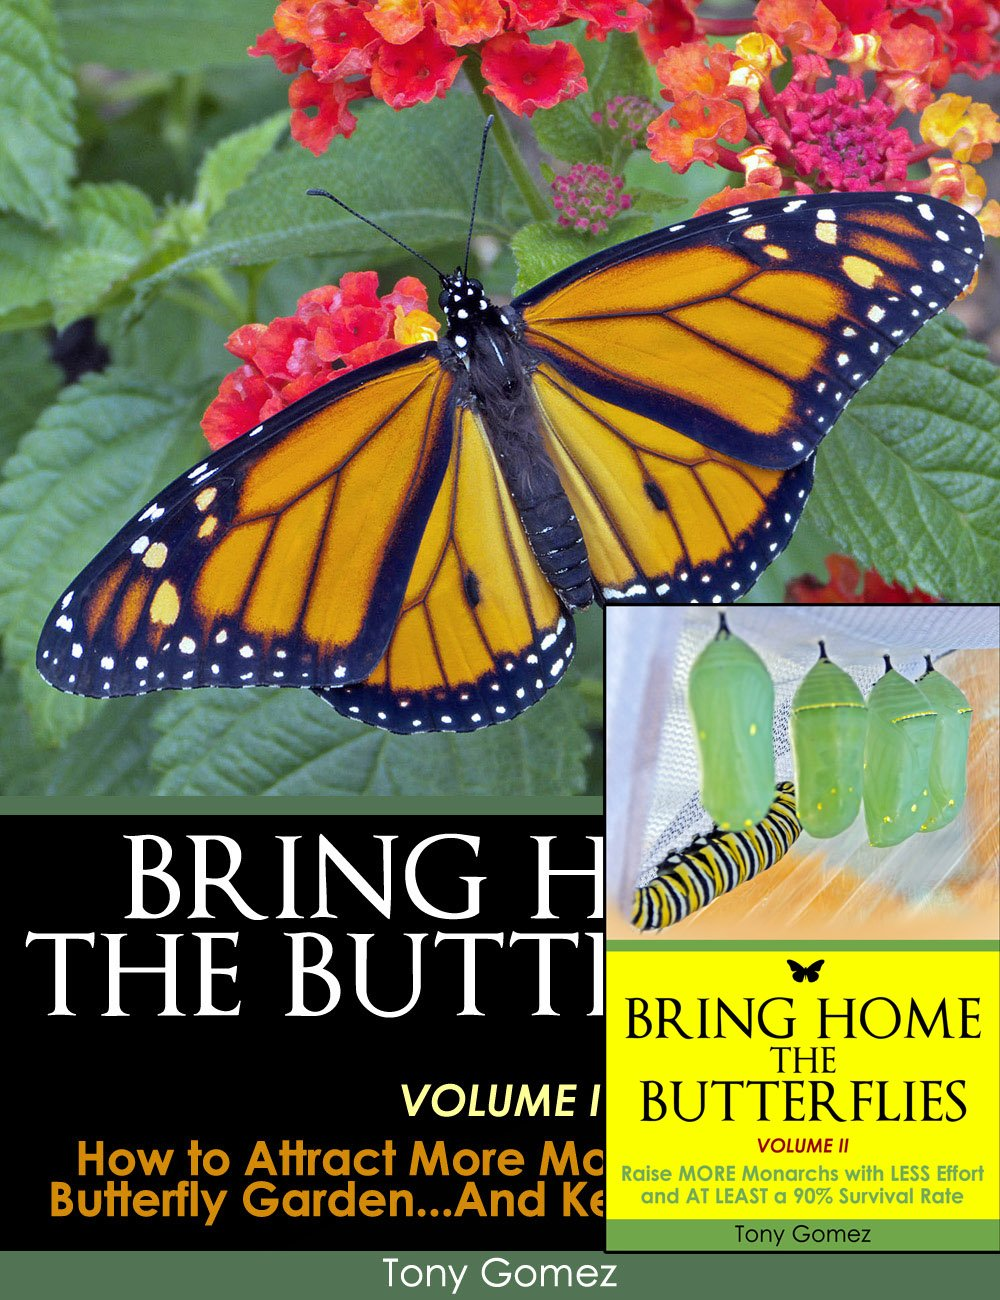 Monarch Butterfly Book Bundle- all the info you need for attracting more monarchs to your garden, raising them indoors, and releasing them back to nature...the circle of life!